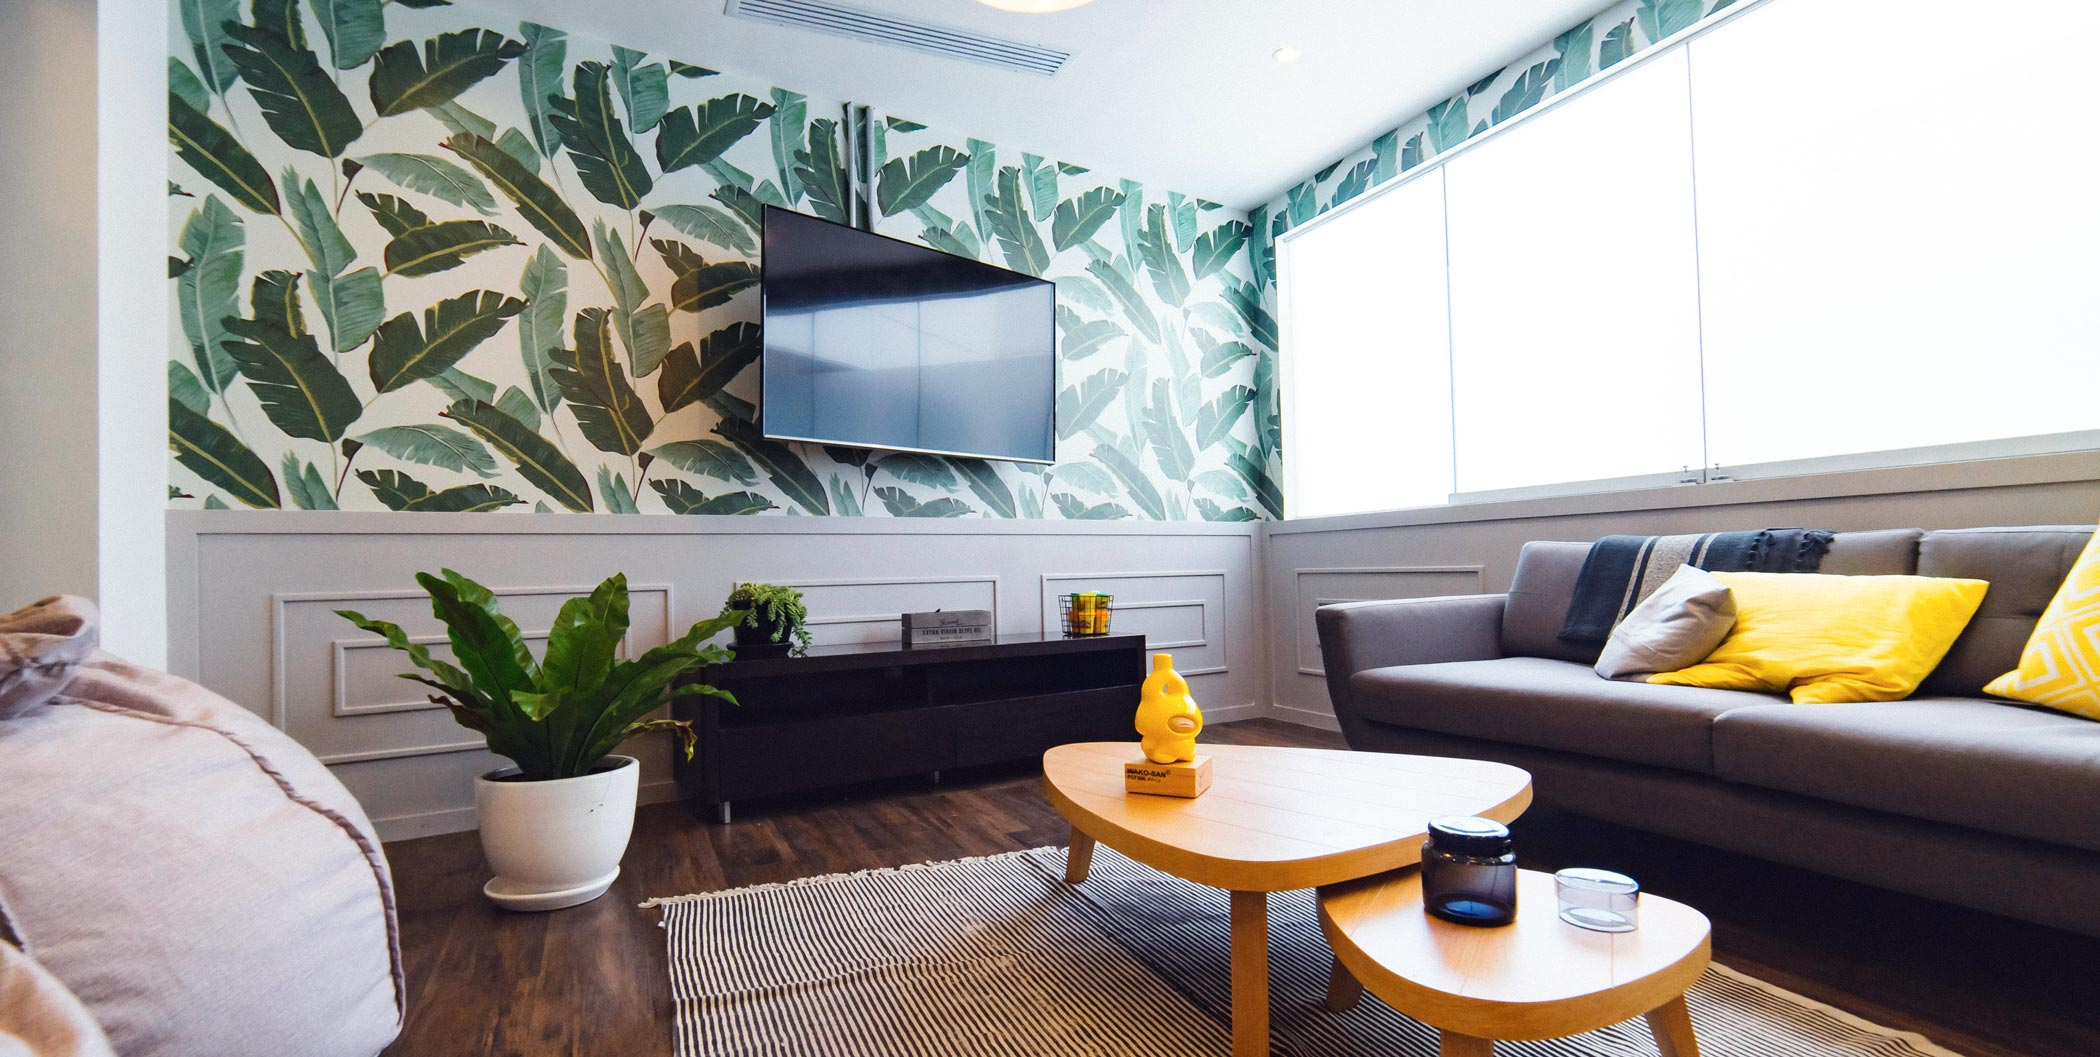 A modern living room with green leafs pattern wallpaper and mounted tv with grey two person couch